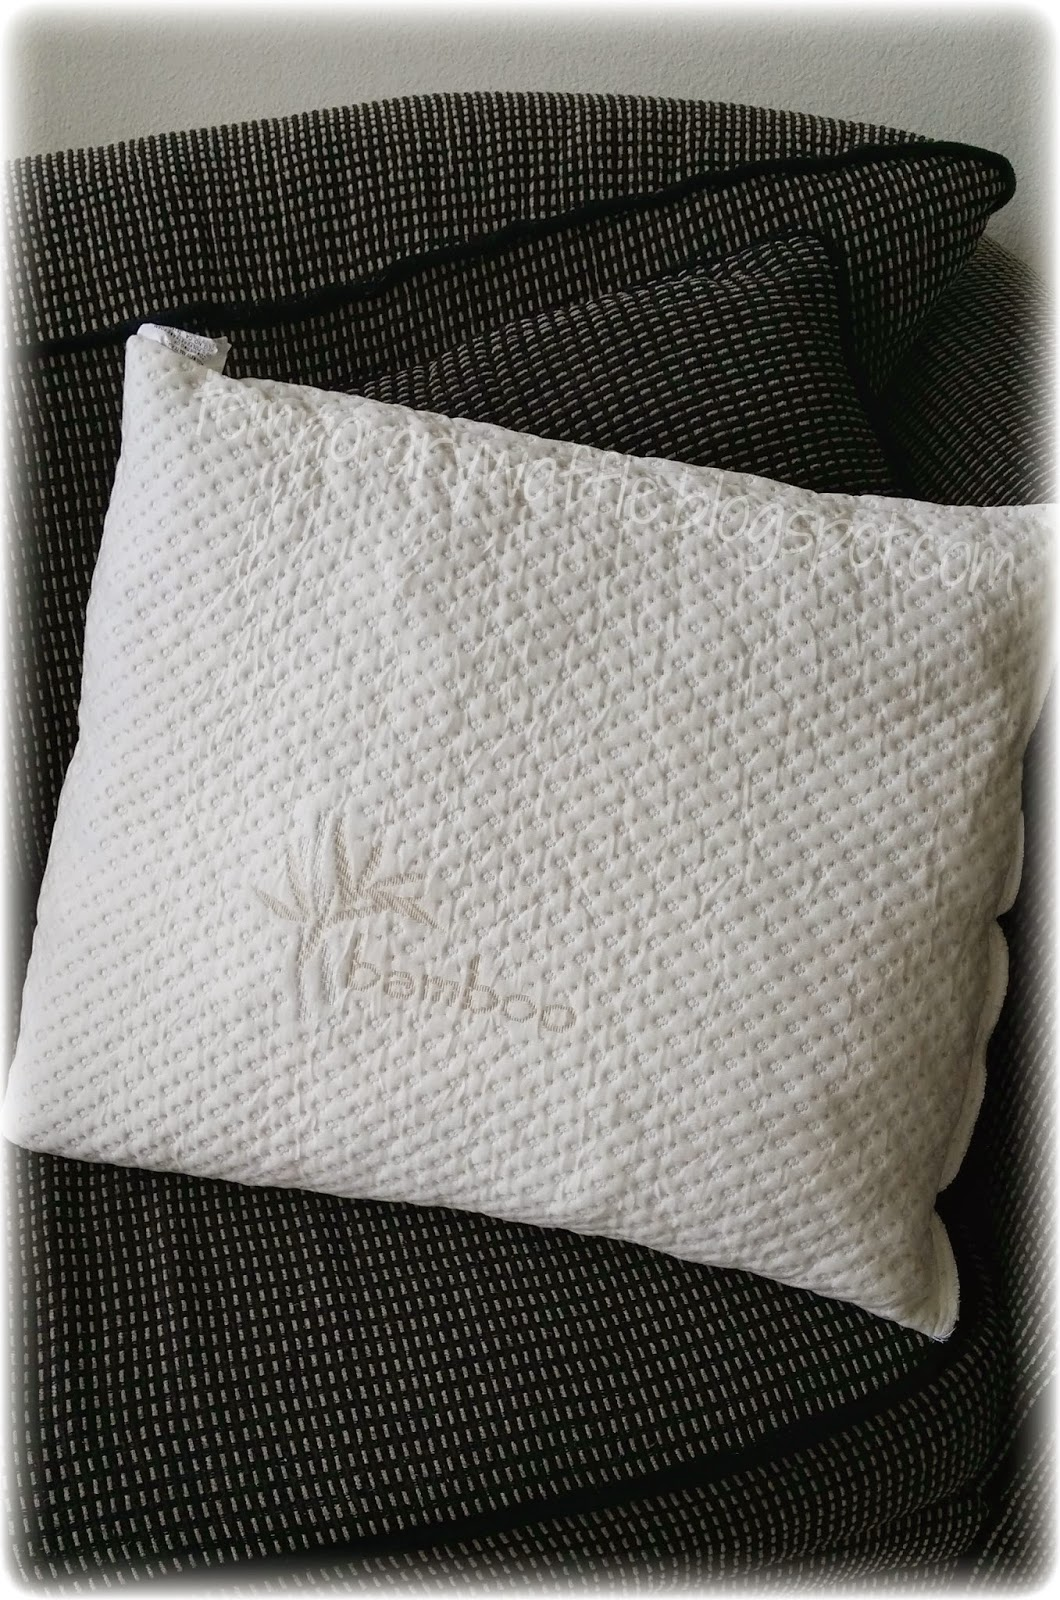 Temporary Waffle Xtreme Comforts Shredded Memory Foam Pillow